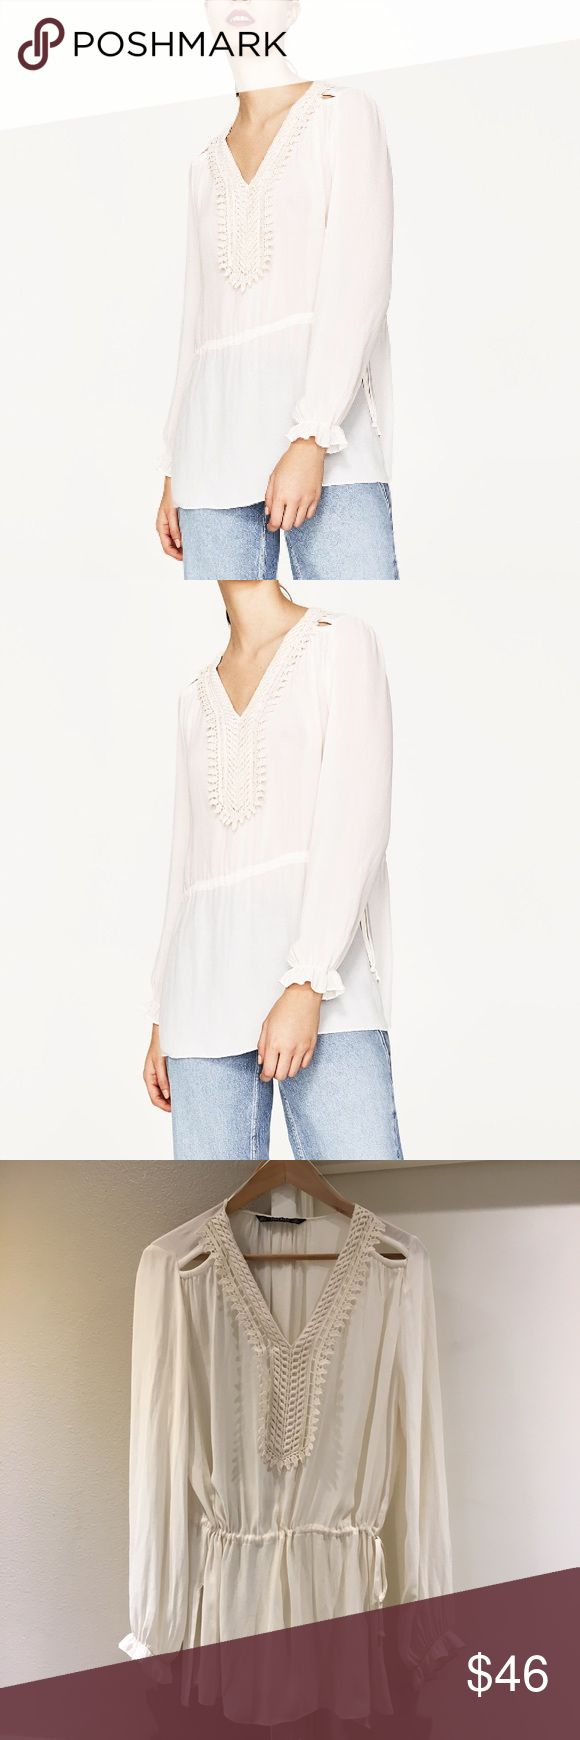 Zara Flowing blouse with bib front Zara flowing blouse with bib front - gently worn, lightweight. ((No trades or PP )) Price is final Zara Tops Blouses